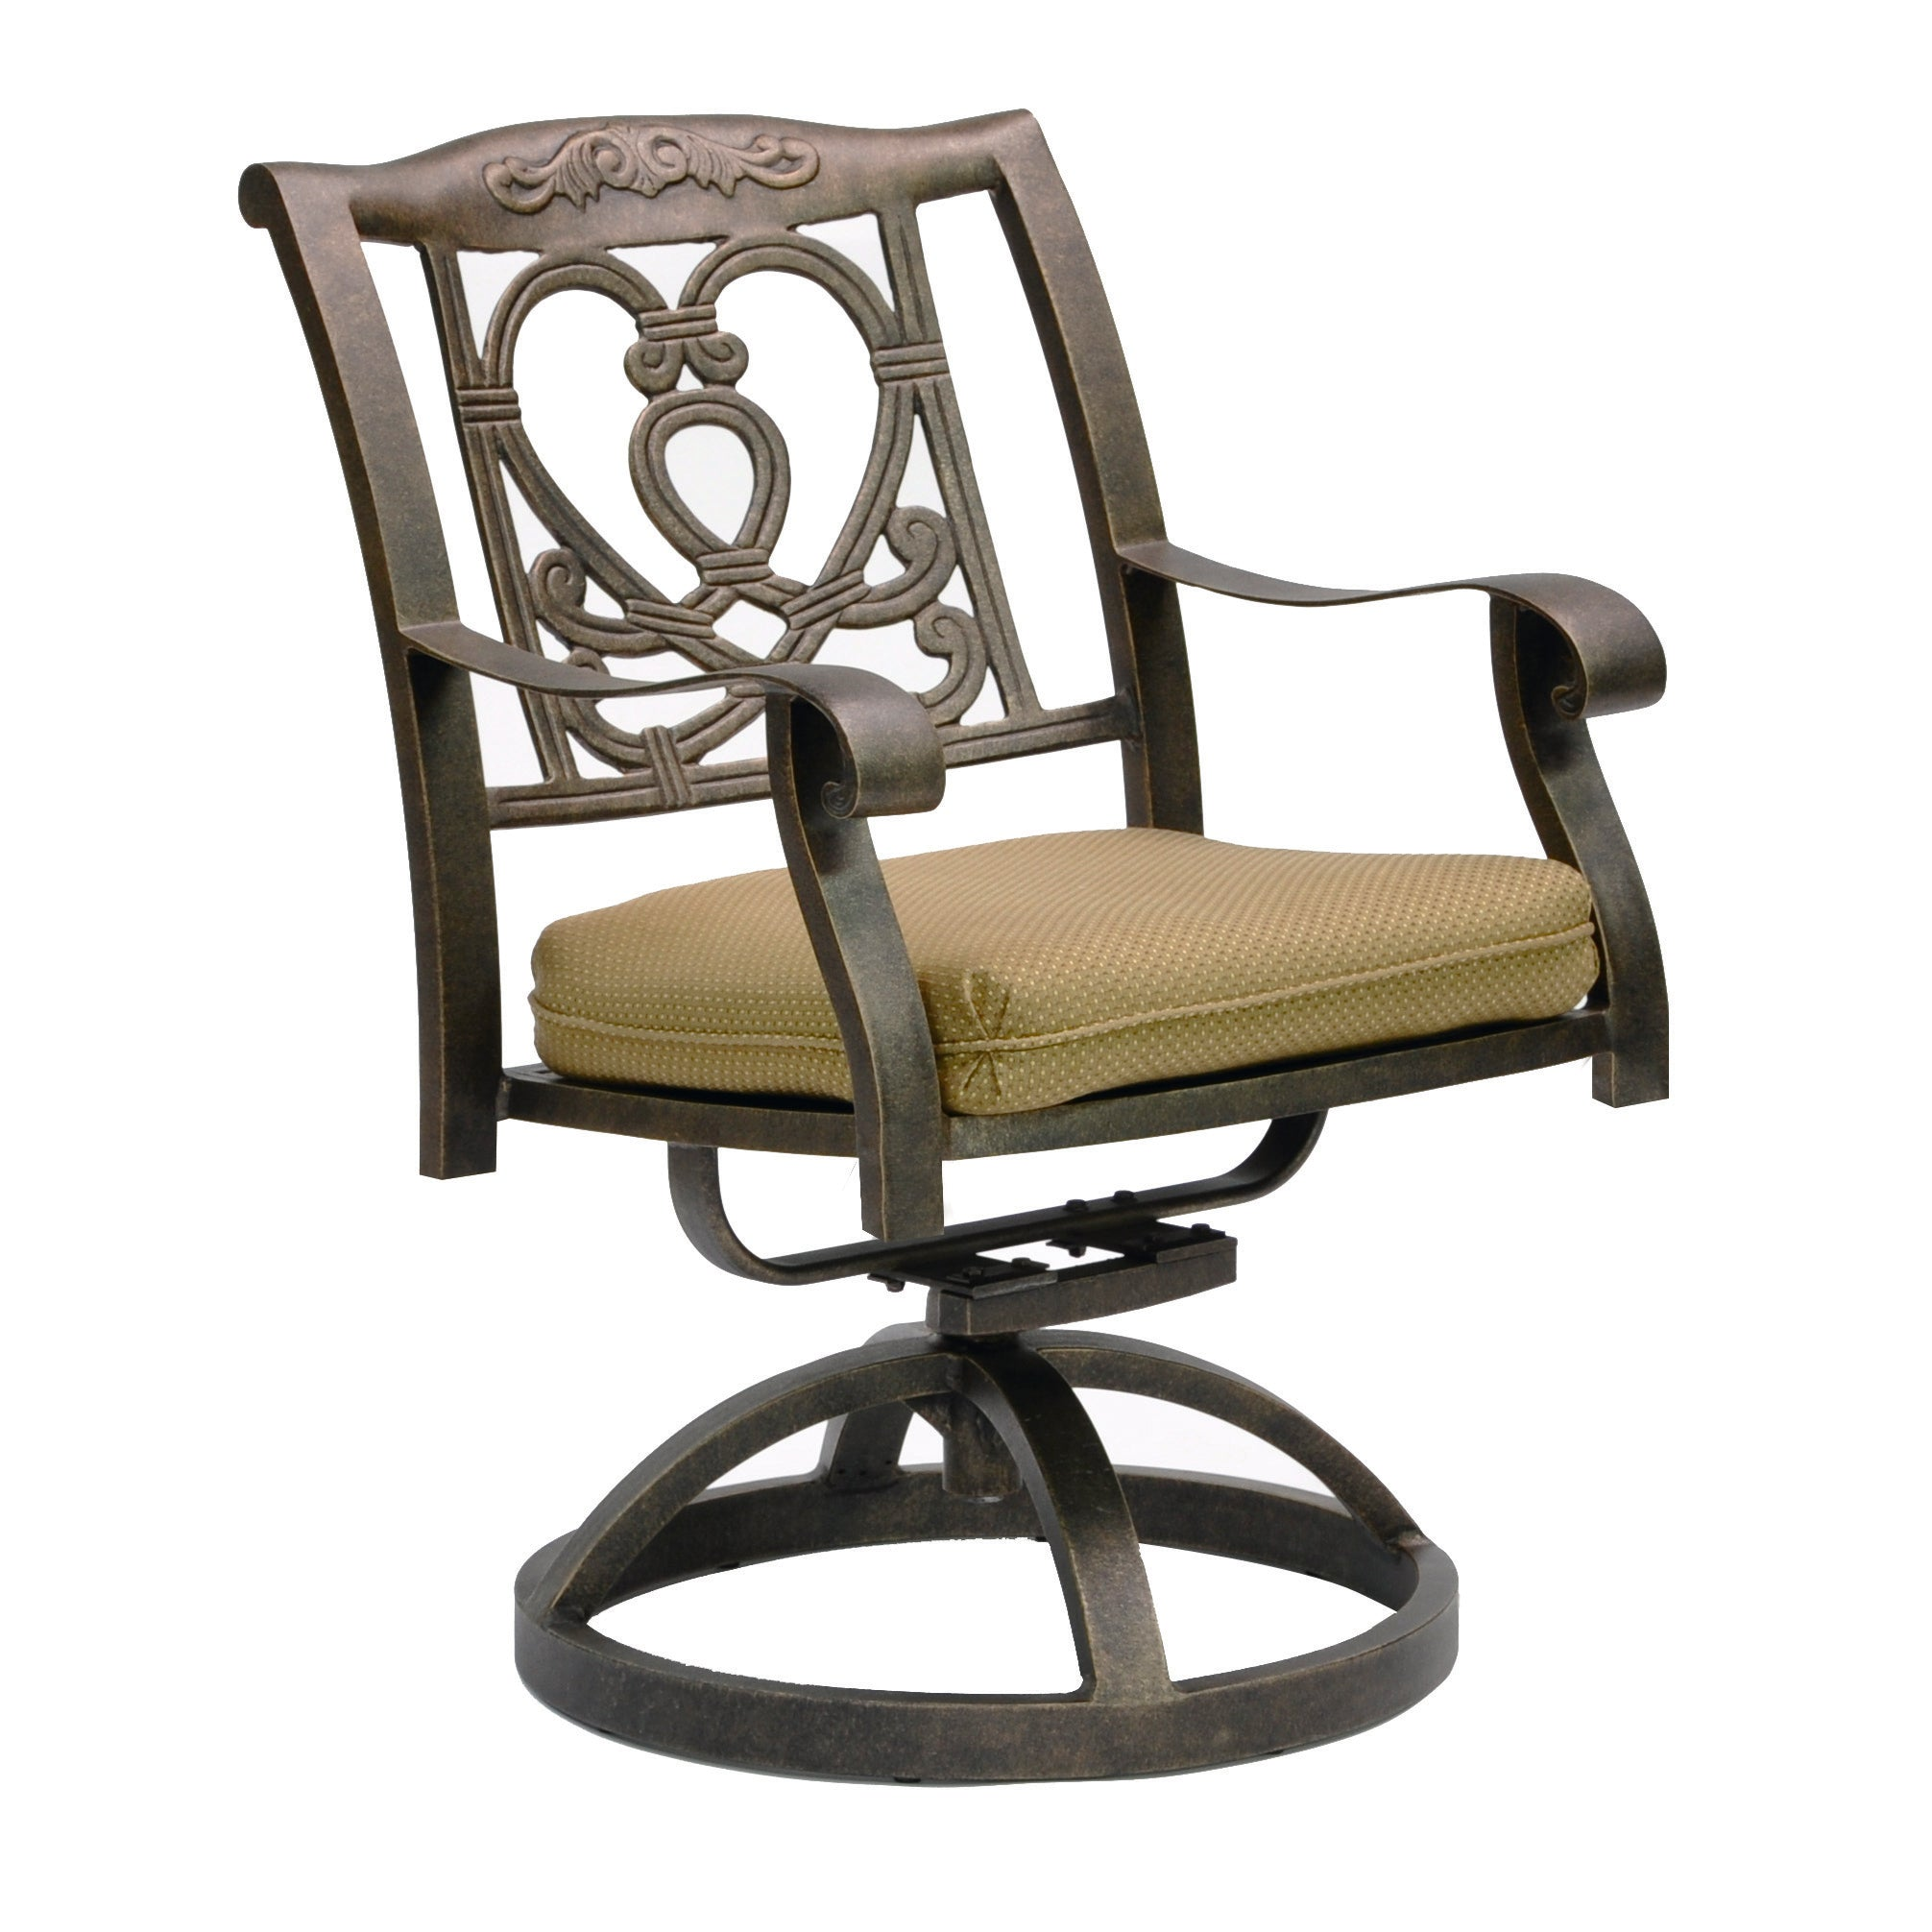 Madrid Cast Swivel Rocker